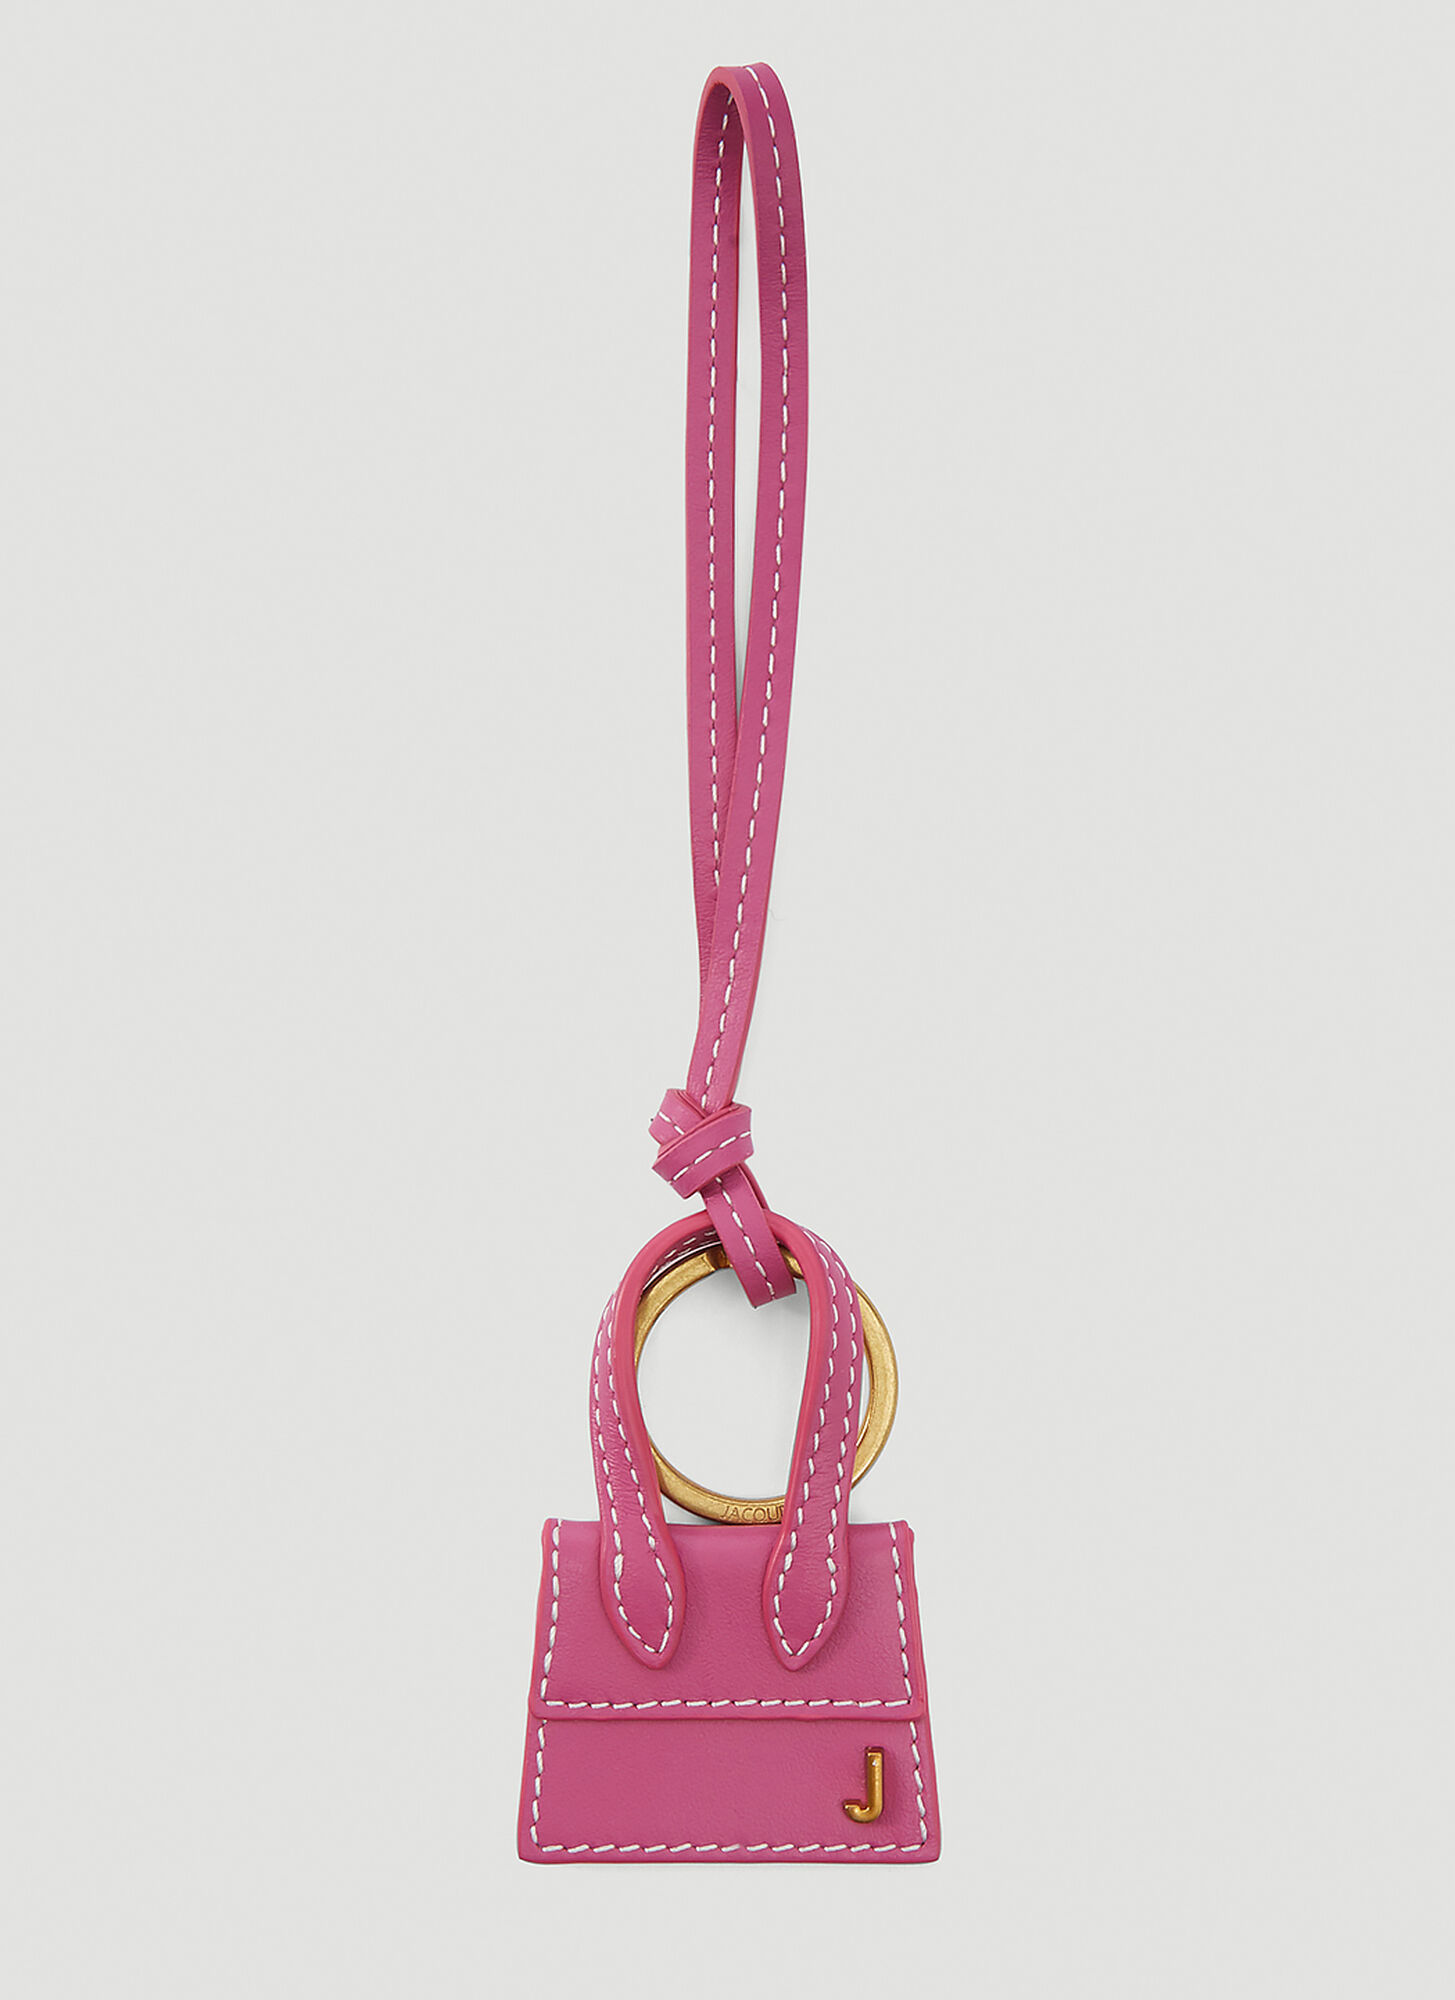 Jacquemus Le Porte Clés Chiquito Keyring in Pink